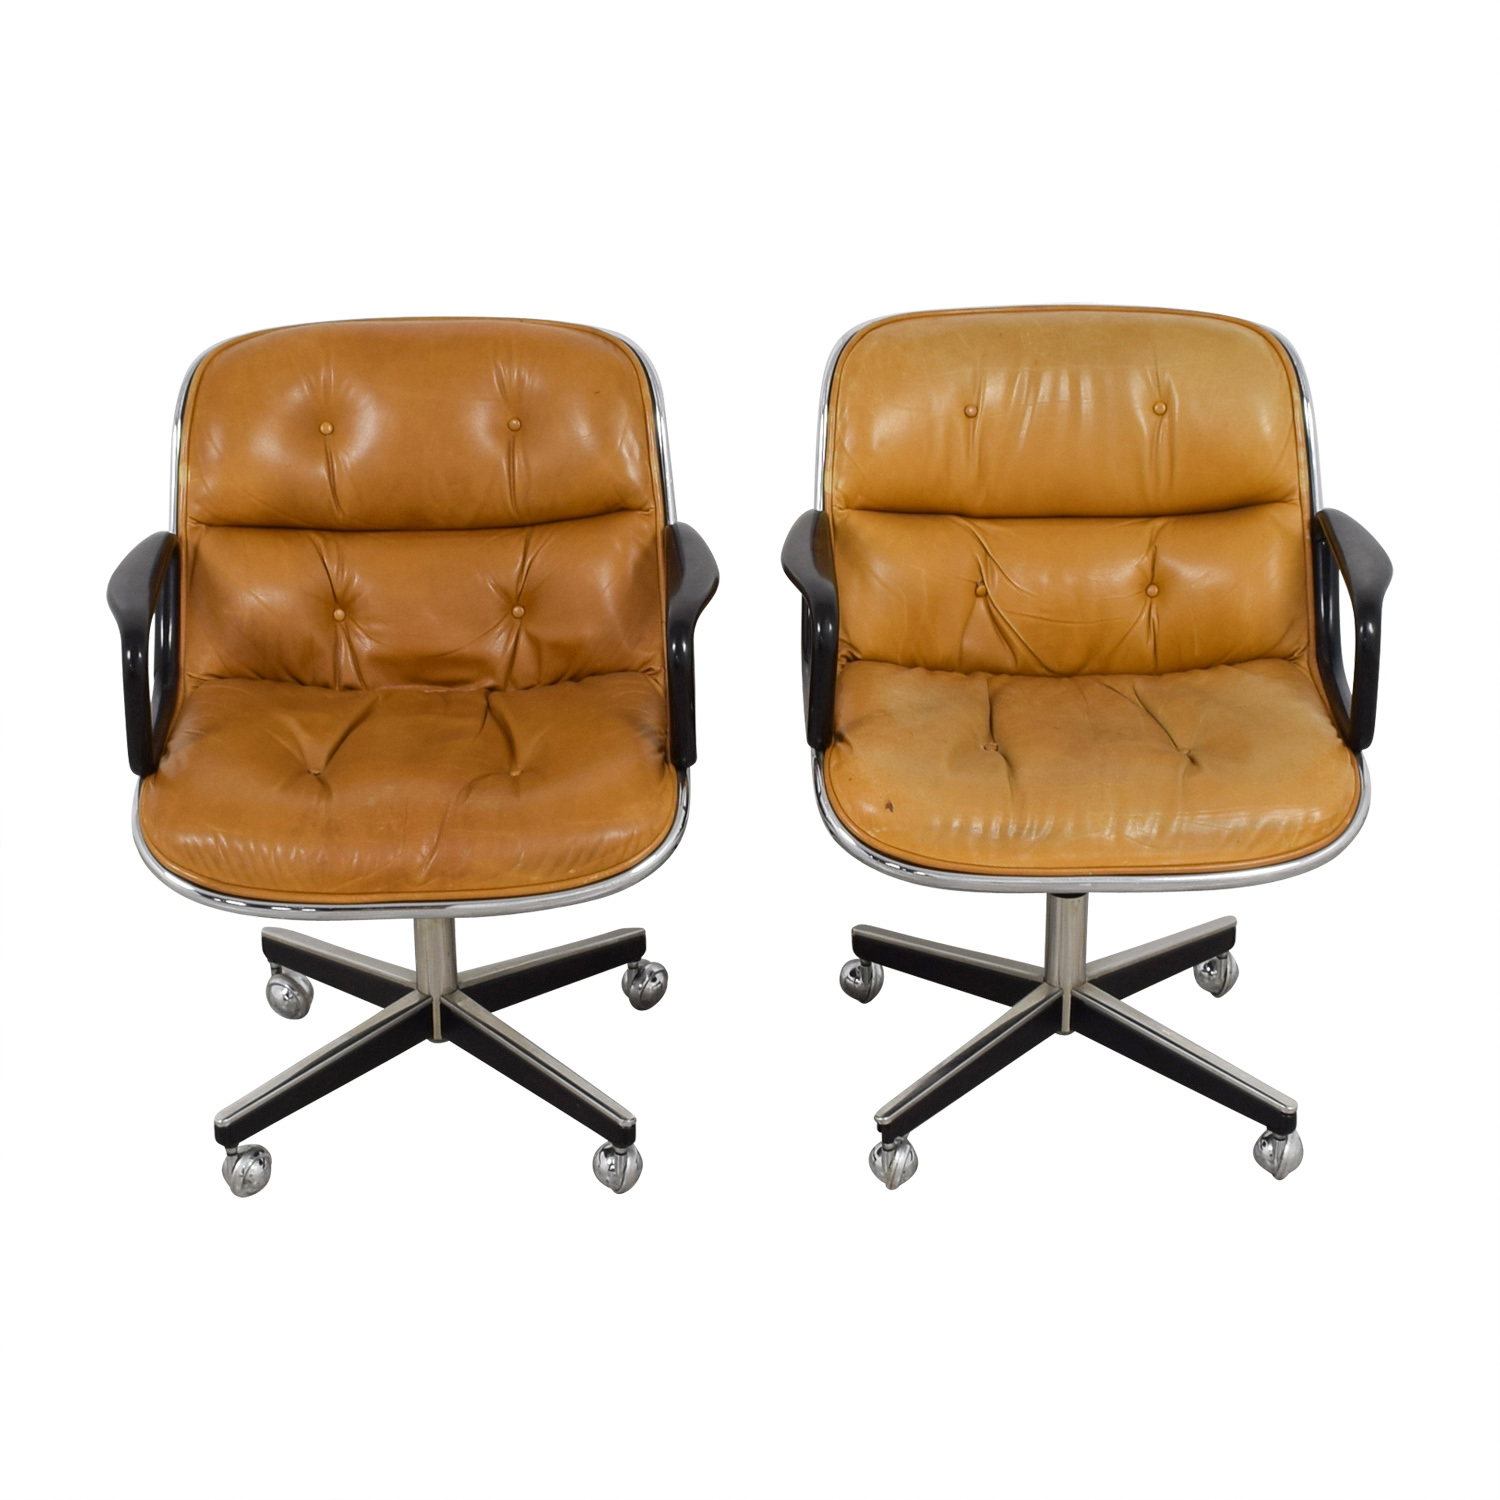 Knoll Knoll Pollock Cognac Leather Executive Chairs dimensions